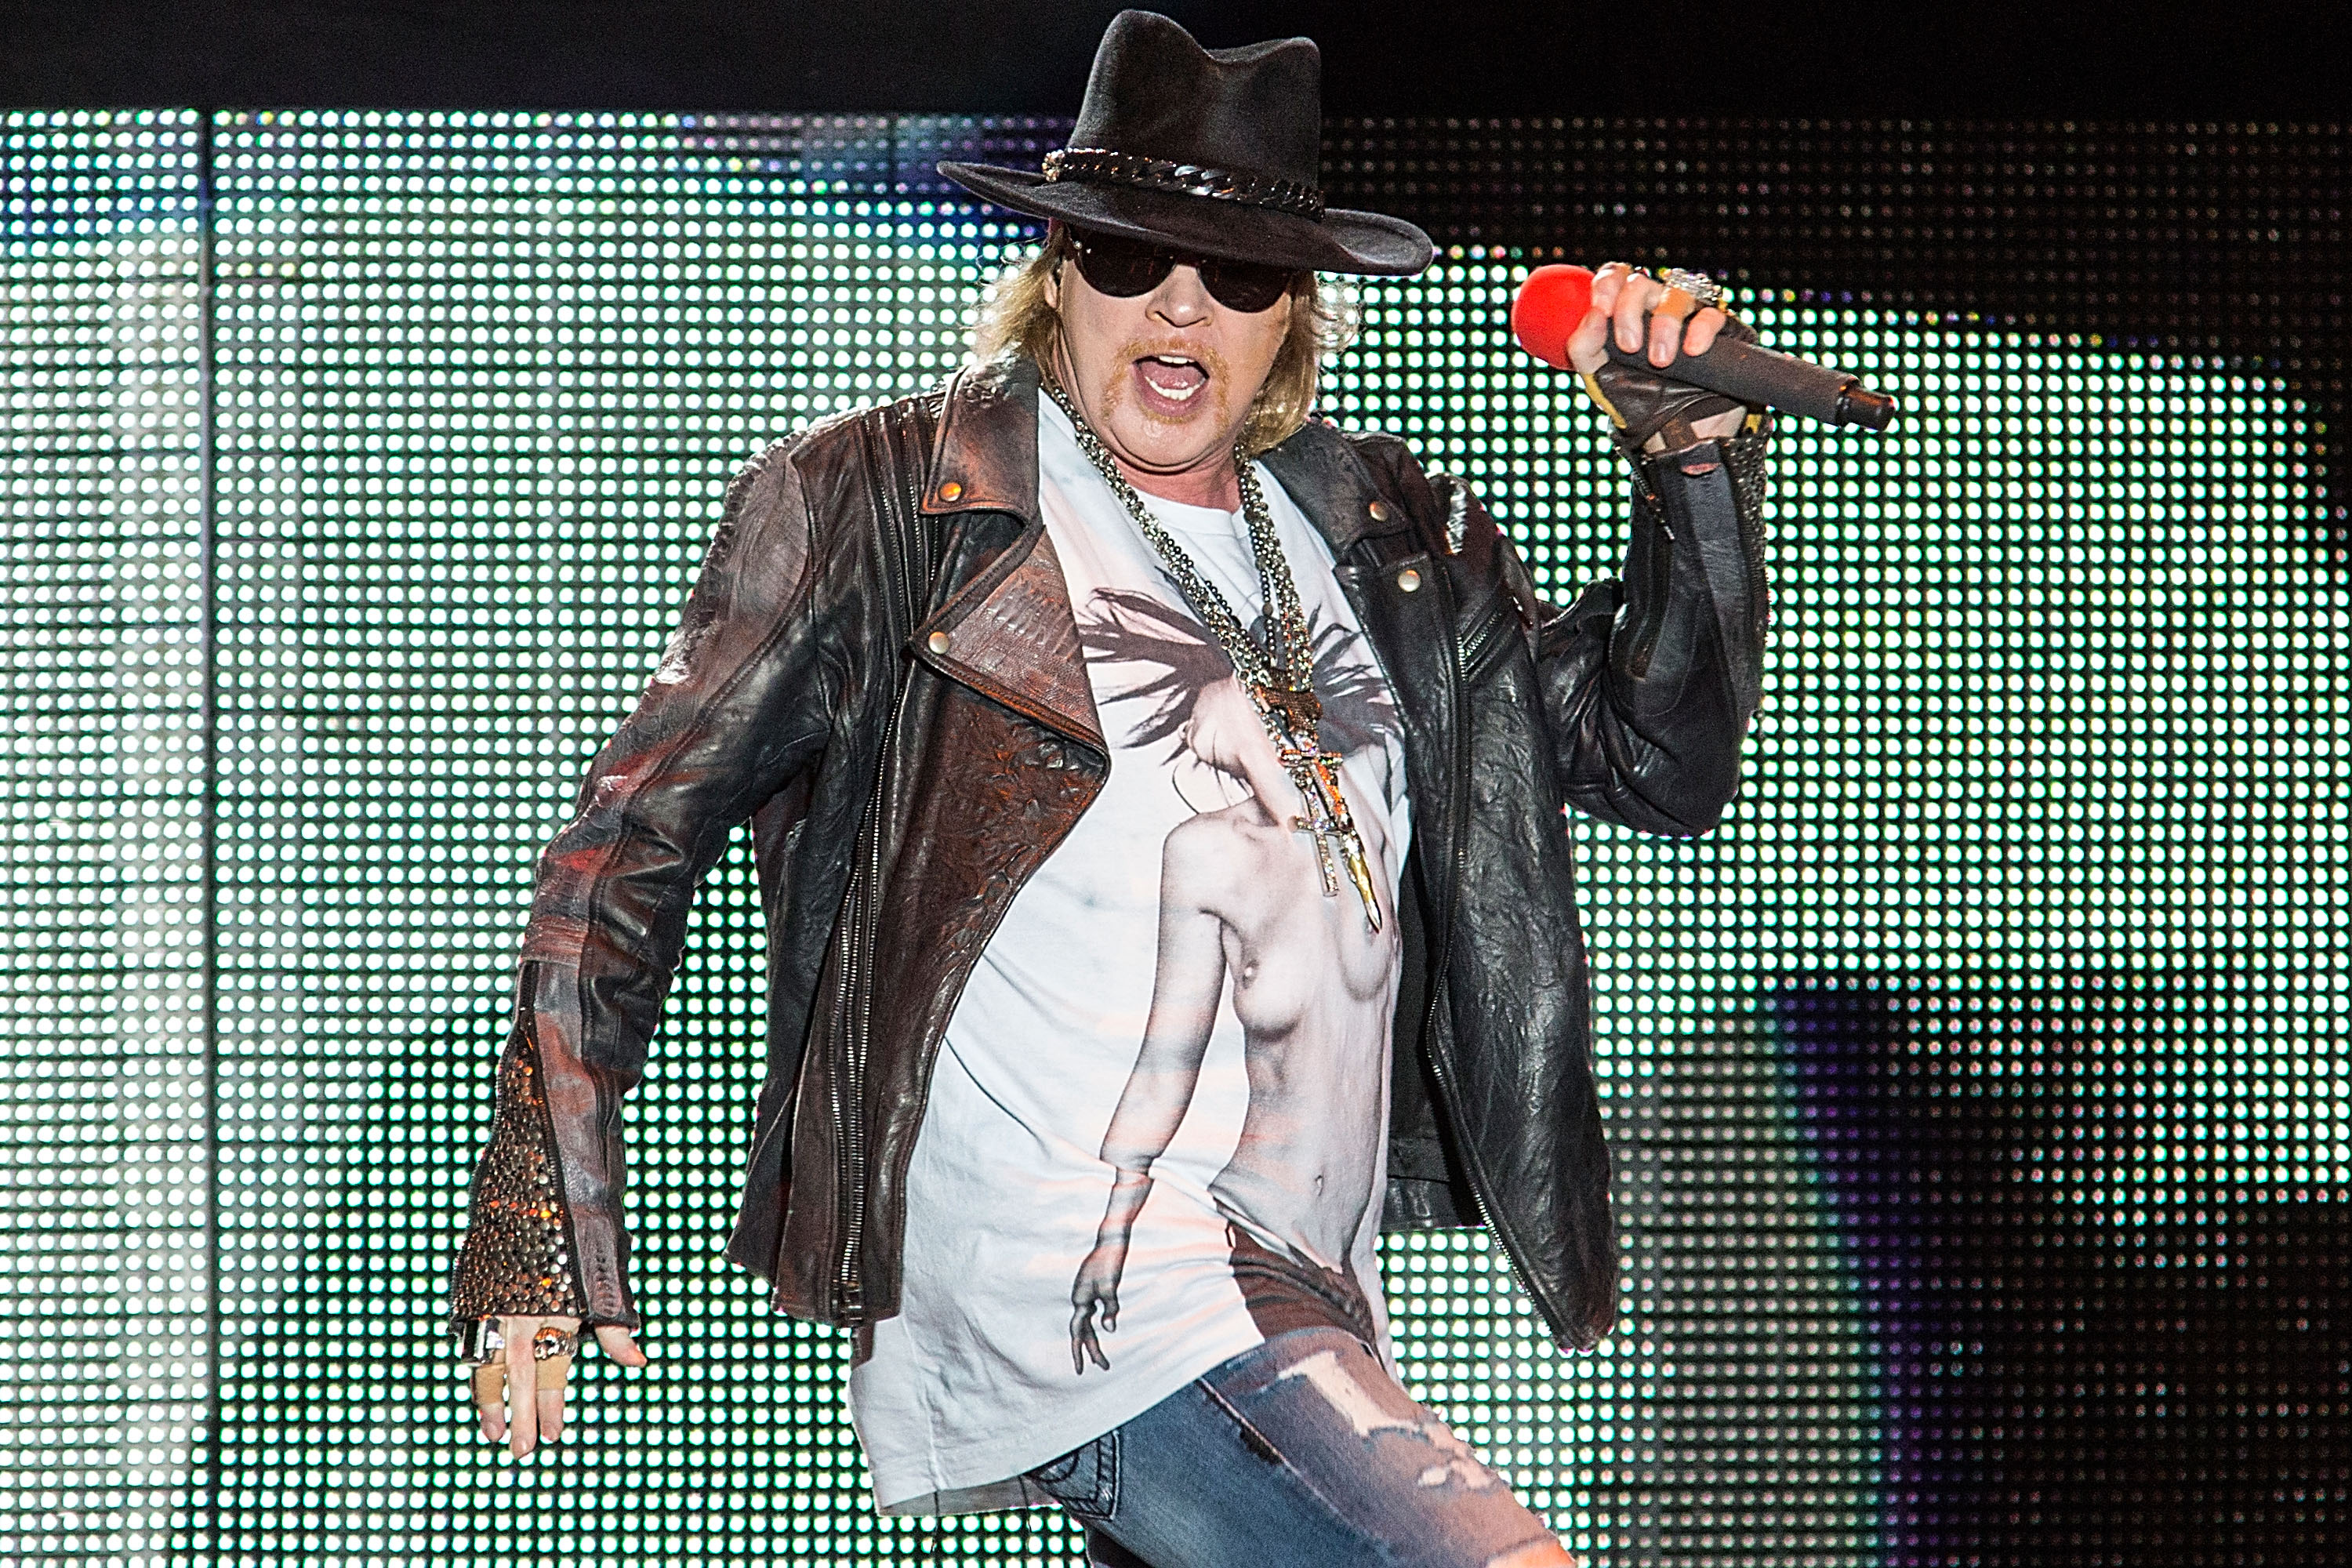 SAN ANTONIO, TX - MAY 26:  Vocalist Axl Rose of Gun N' Roses performs in concert during River City Rockfest at the AT&T C